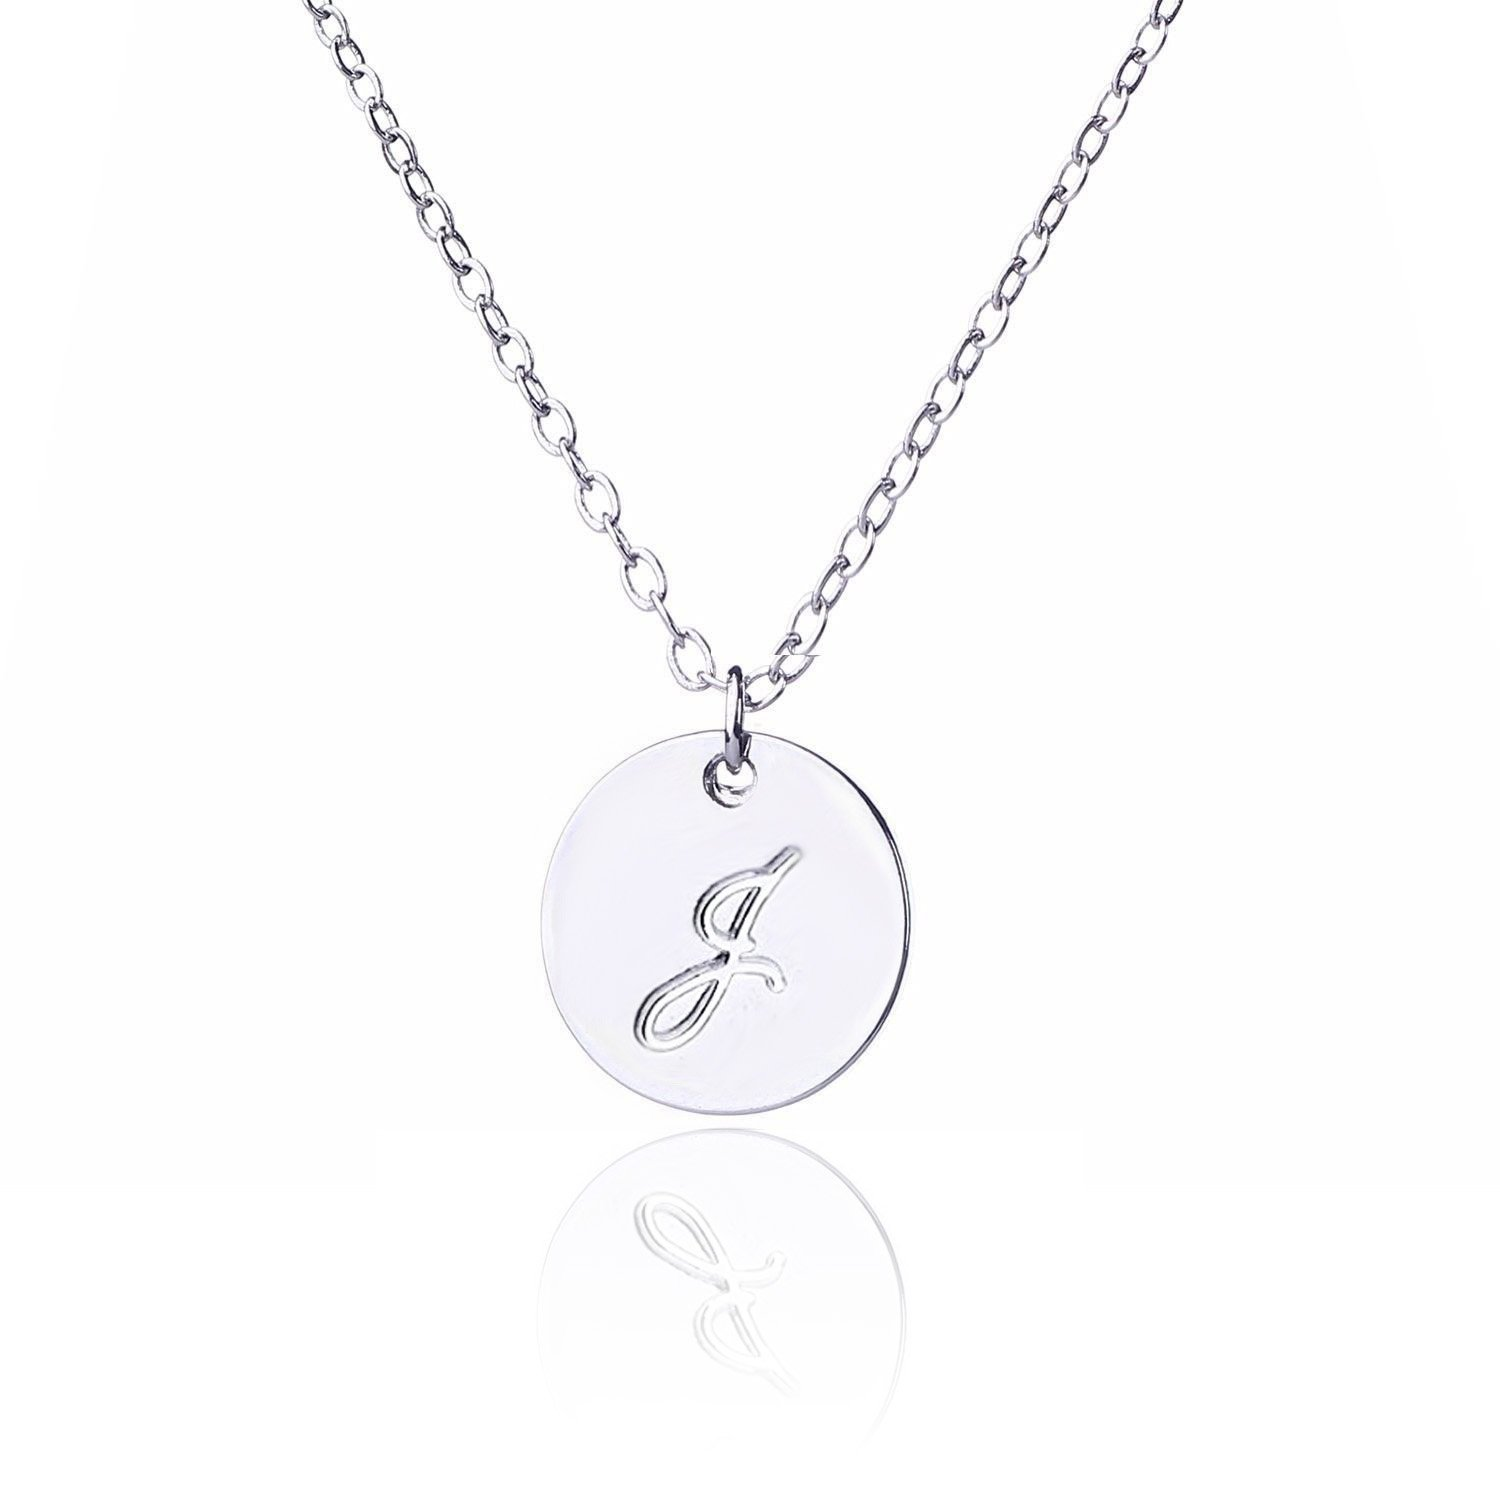 Luvalti Initial Letter Jewelry Family /& Friends Jewelry Gift Large Alphabet Earrings and Necklace